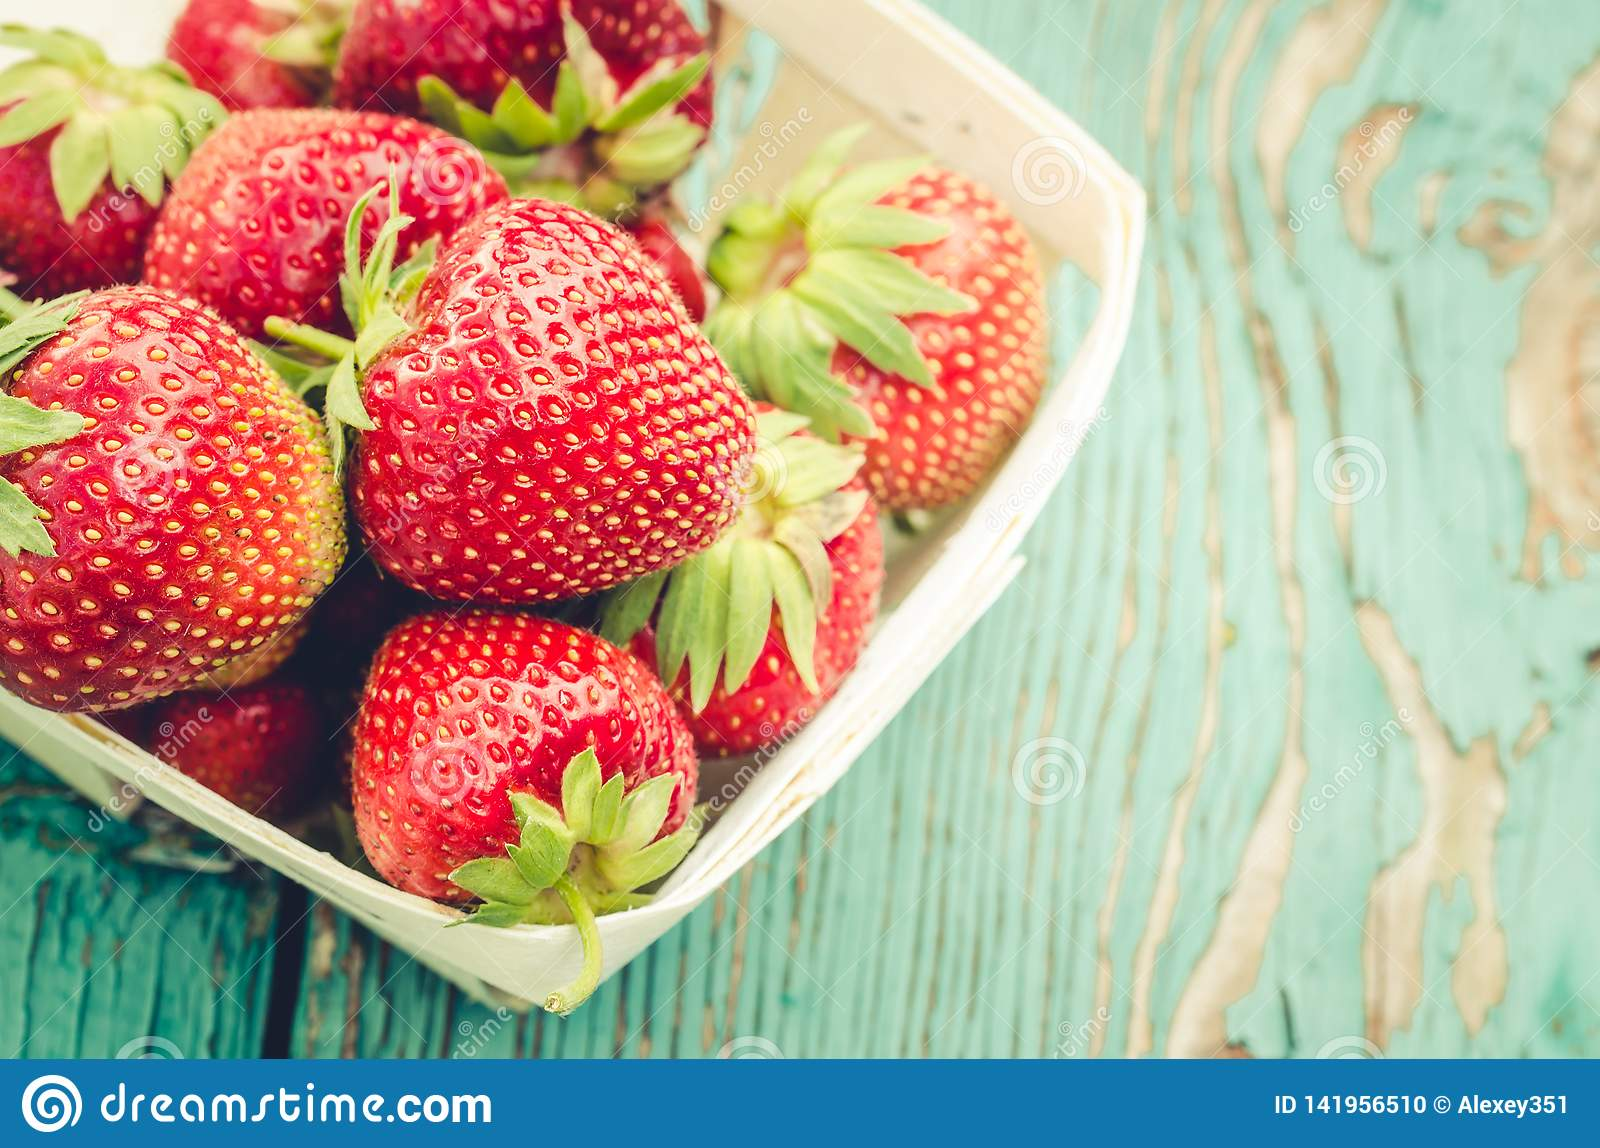 Strawberry. fresh berries of strawberry/Top view. Strawberry in small basket on natural wooden background